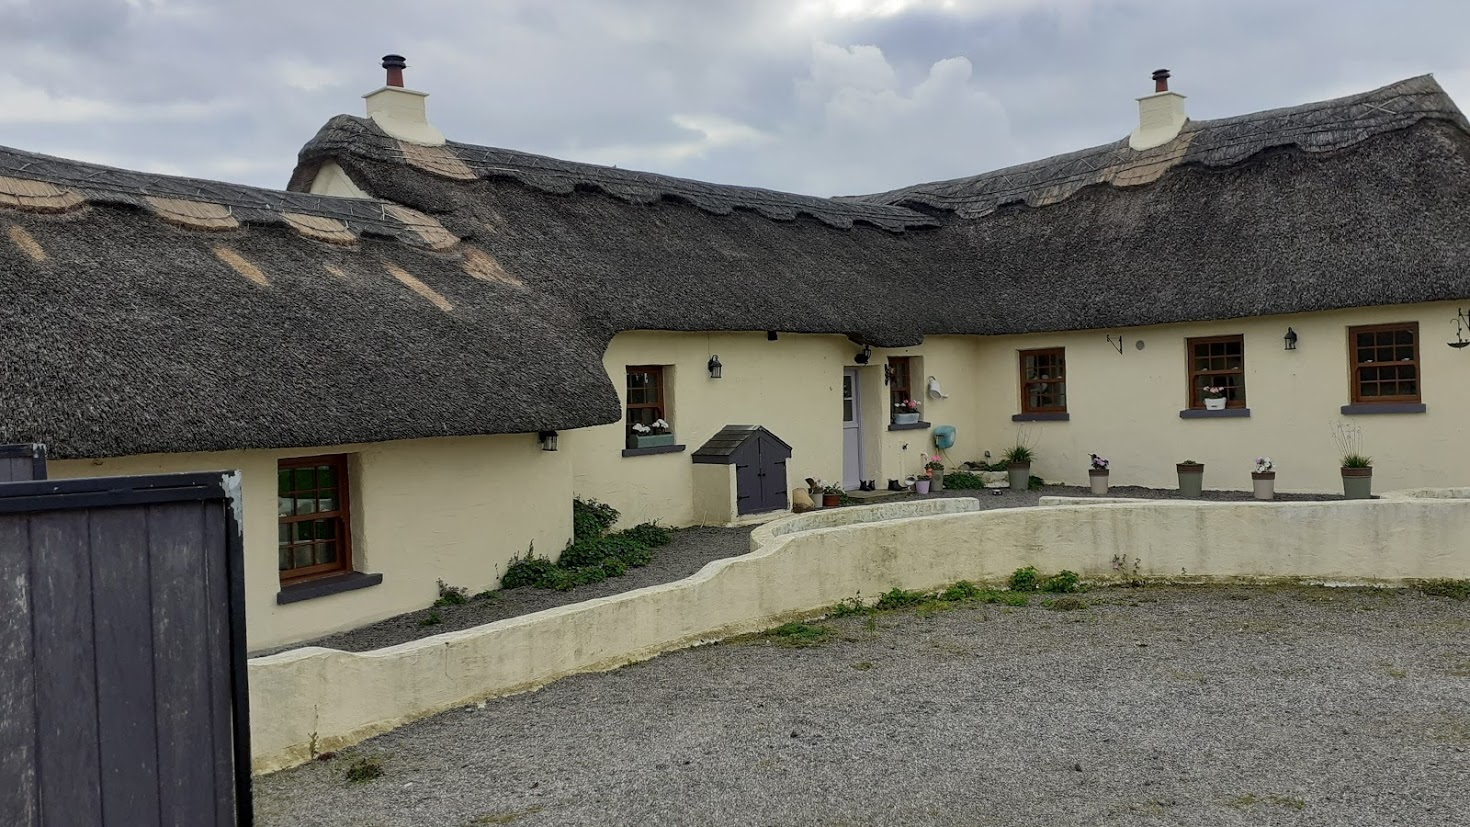 Thatch Roof Cottage Ireland - County Laois Thatched Cottage